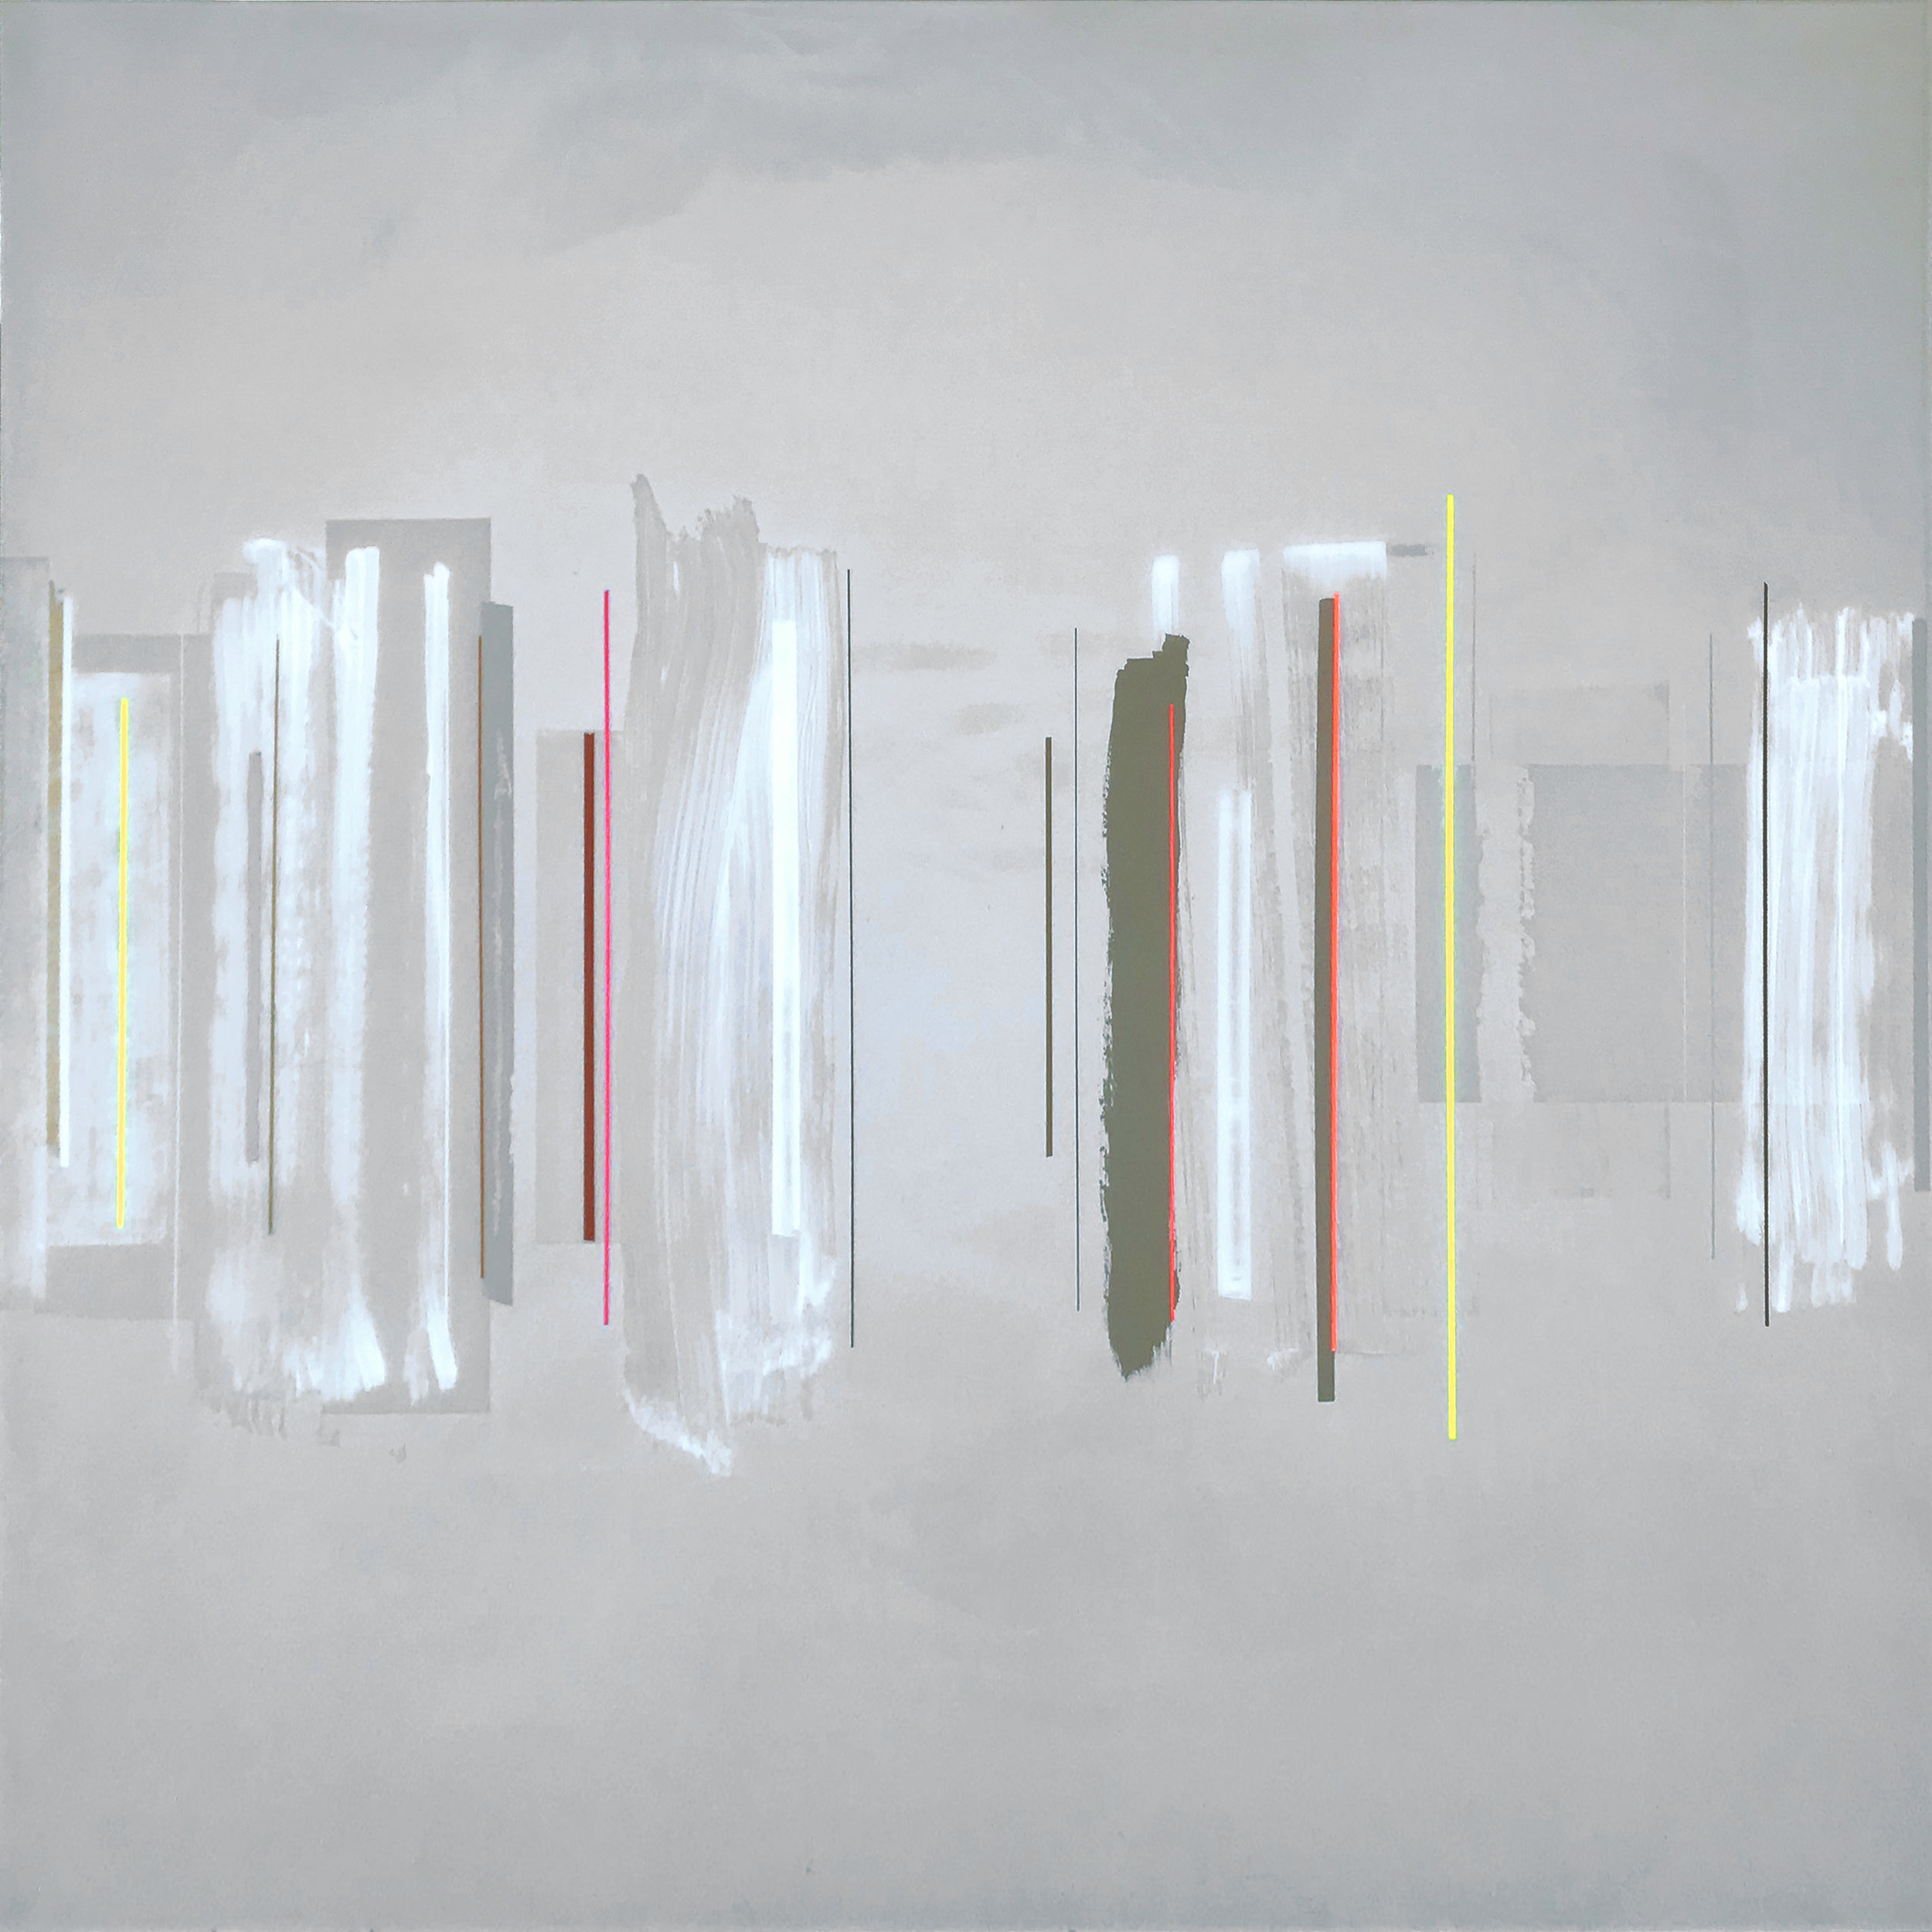 FRINK | 120x120cm | acrylic on aluminium with high gloss epoxy resin | £3,800.00 |